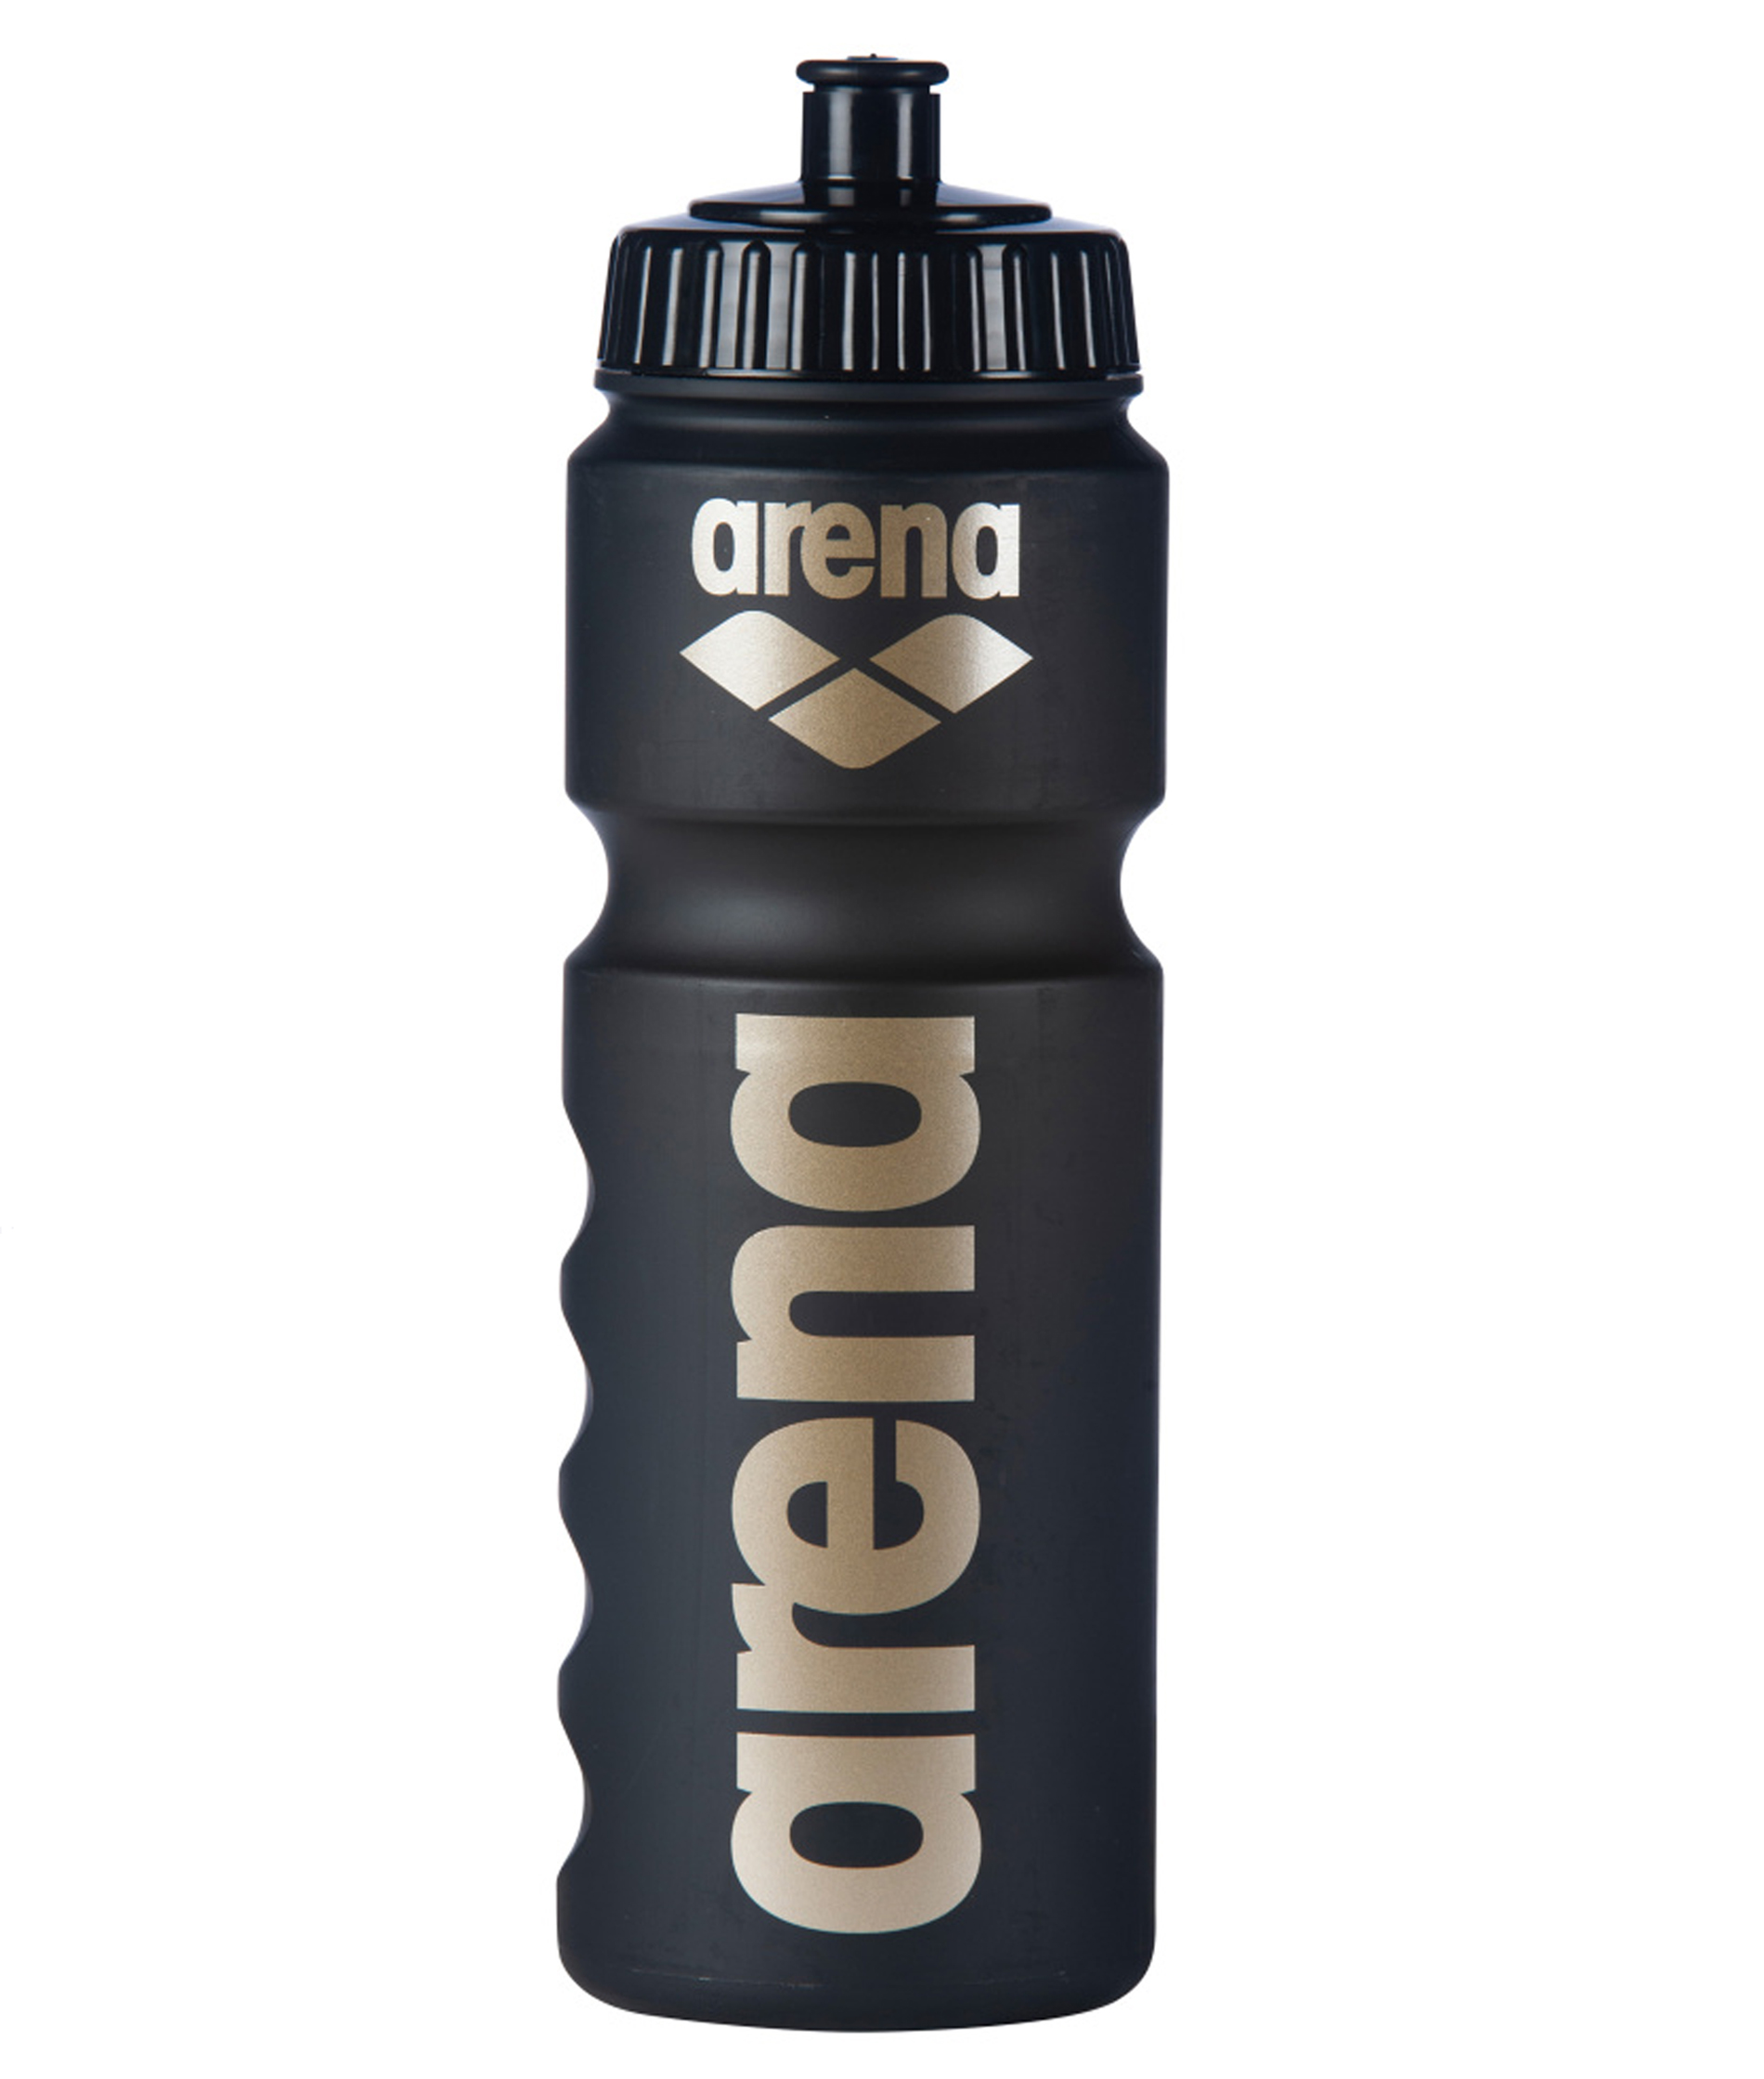 Arena 750ml Water Bottle - Black/Gold